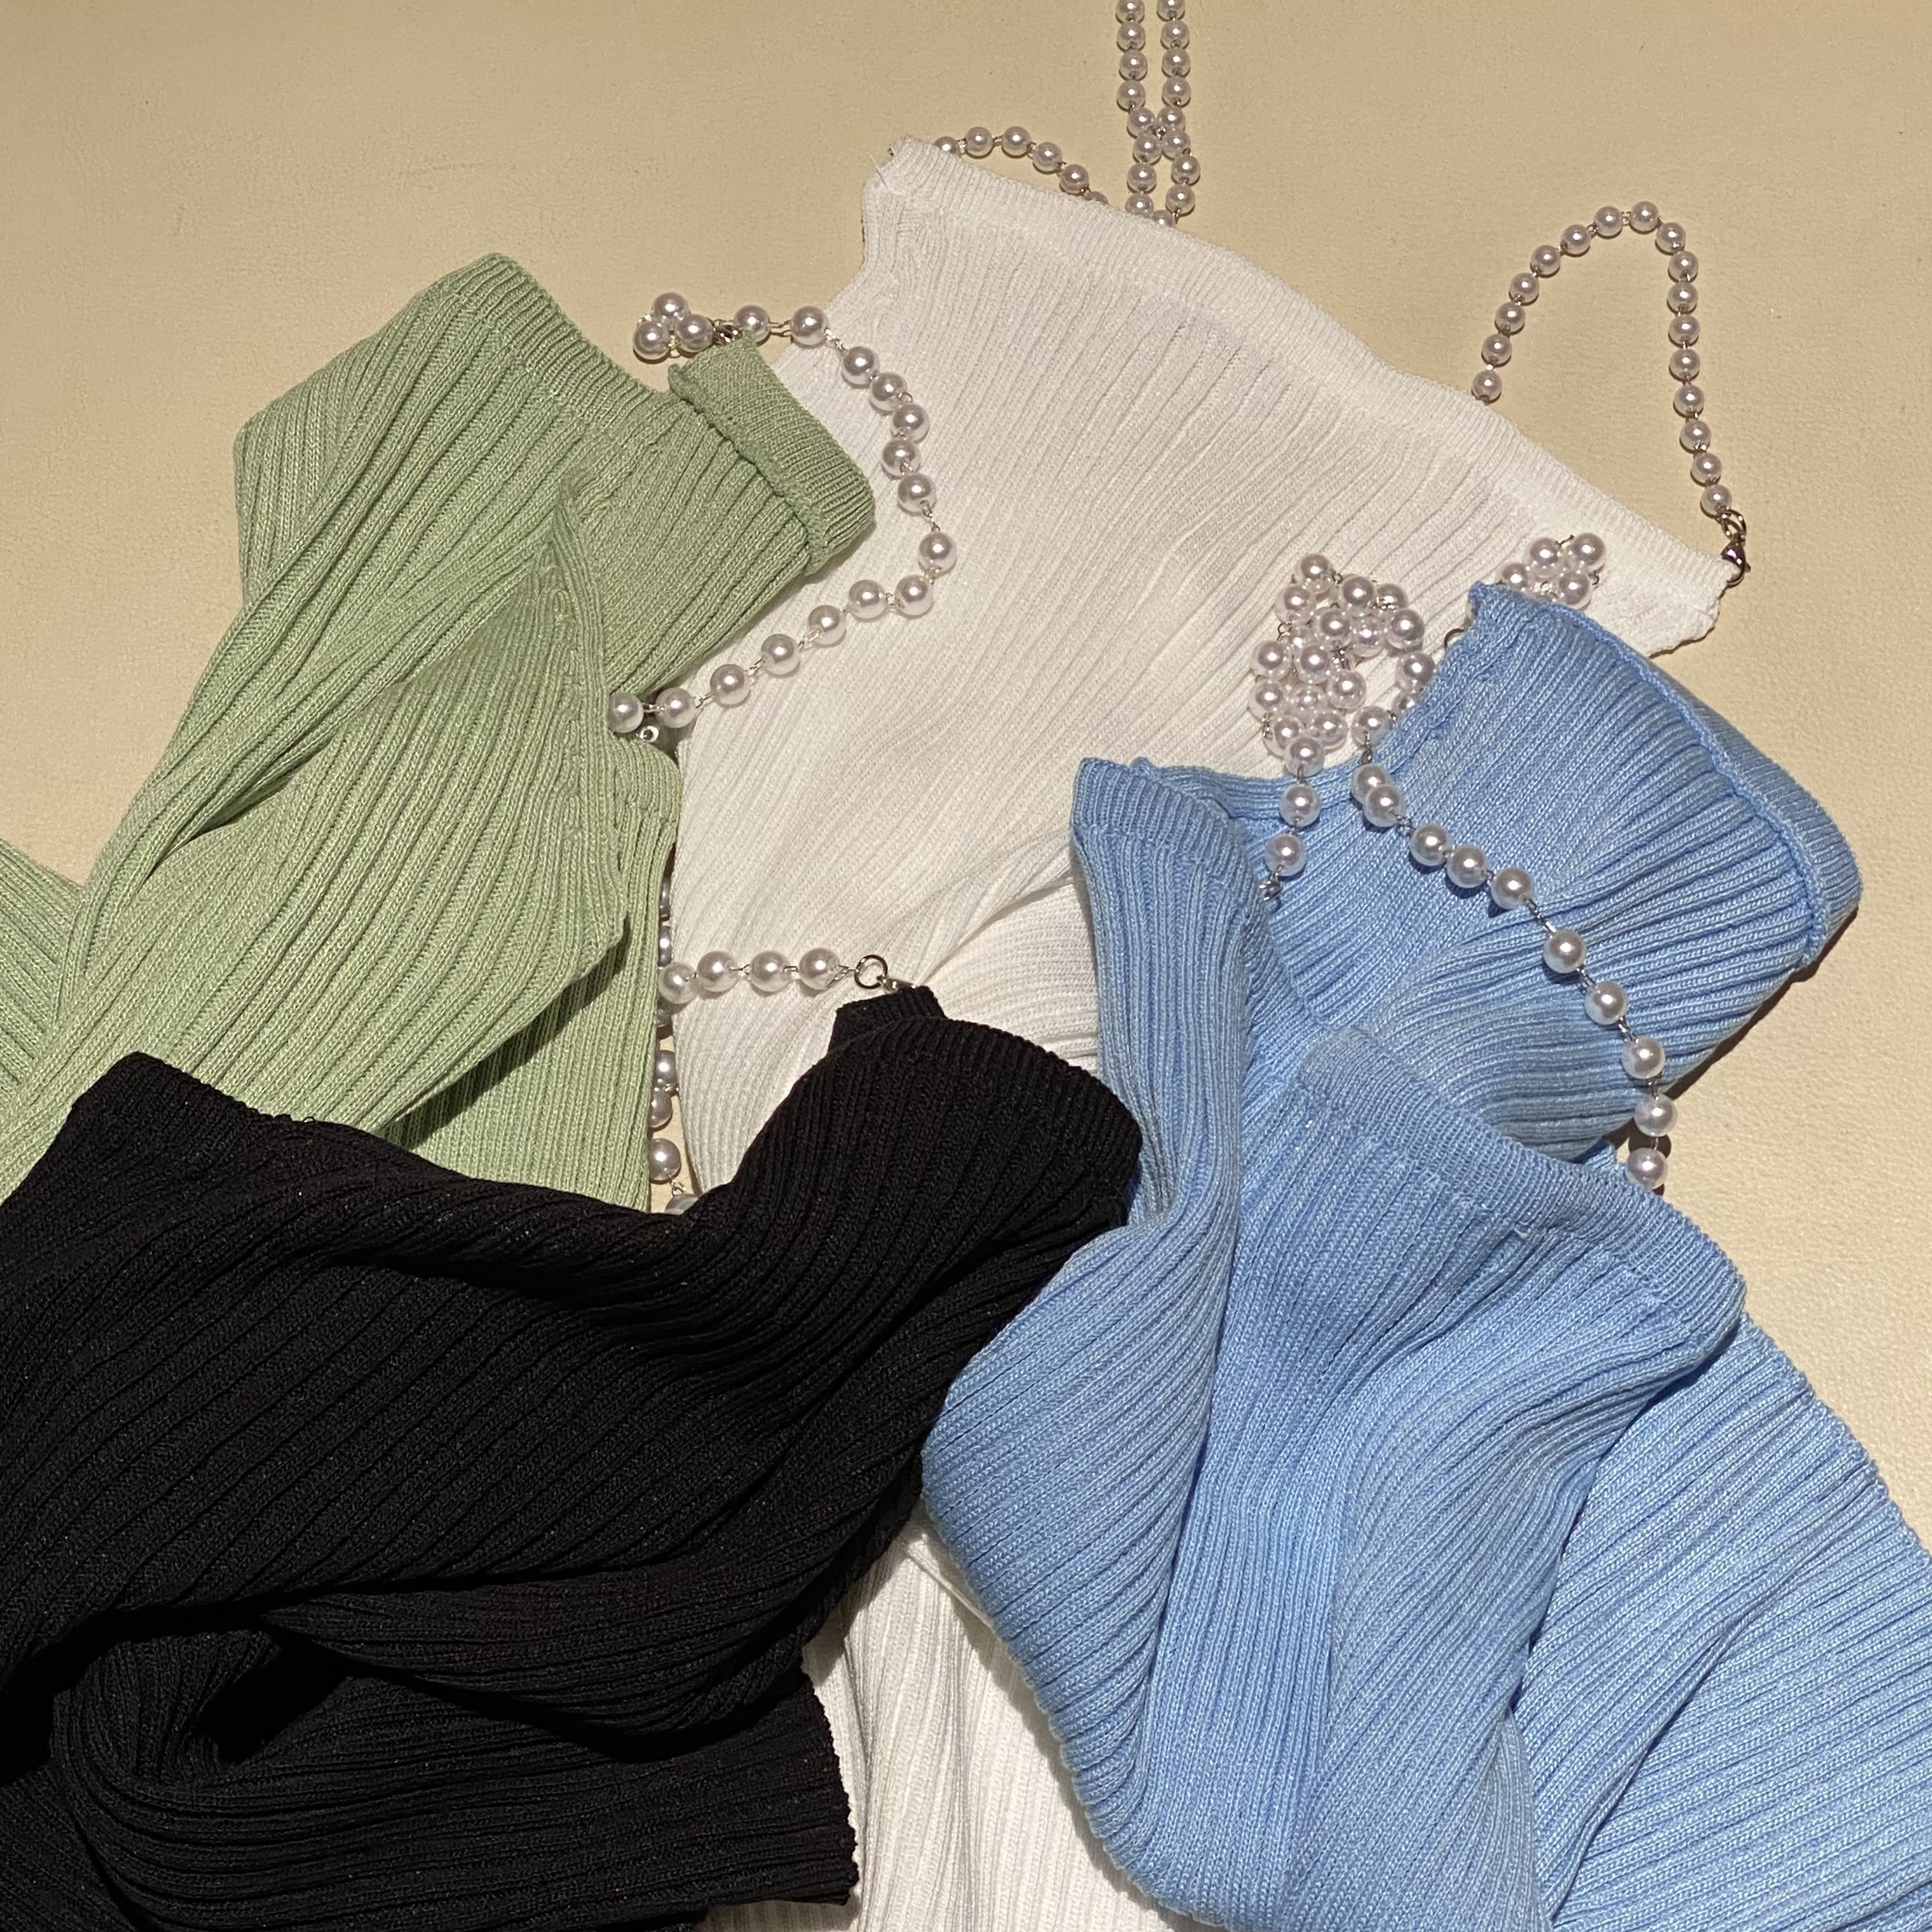 【Belle】pearl camisol / blue